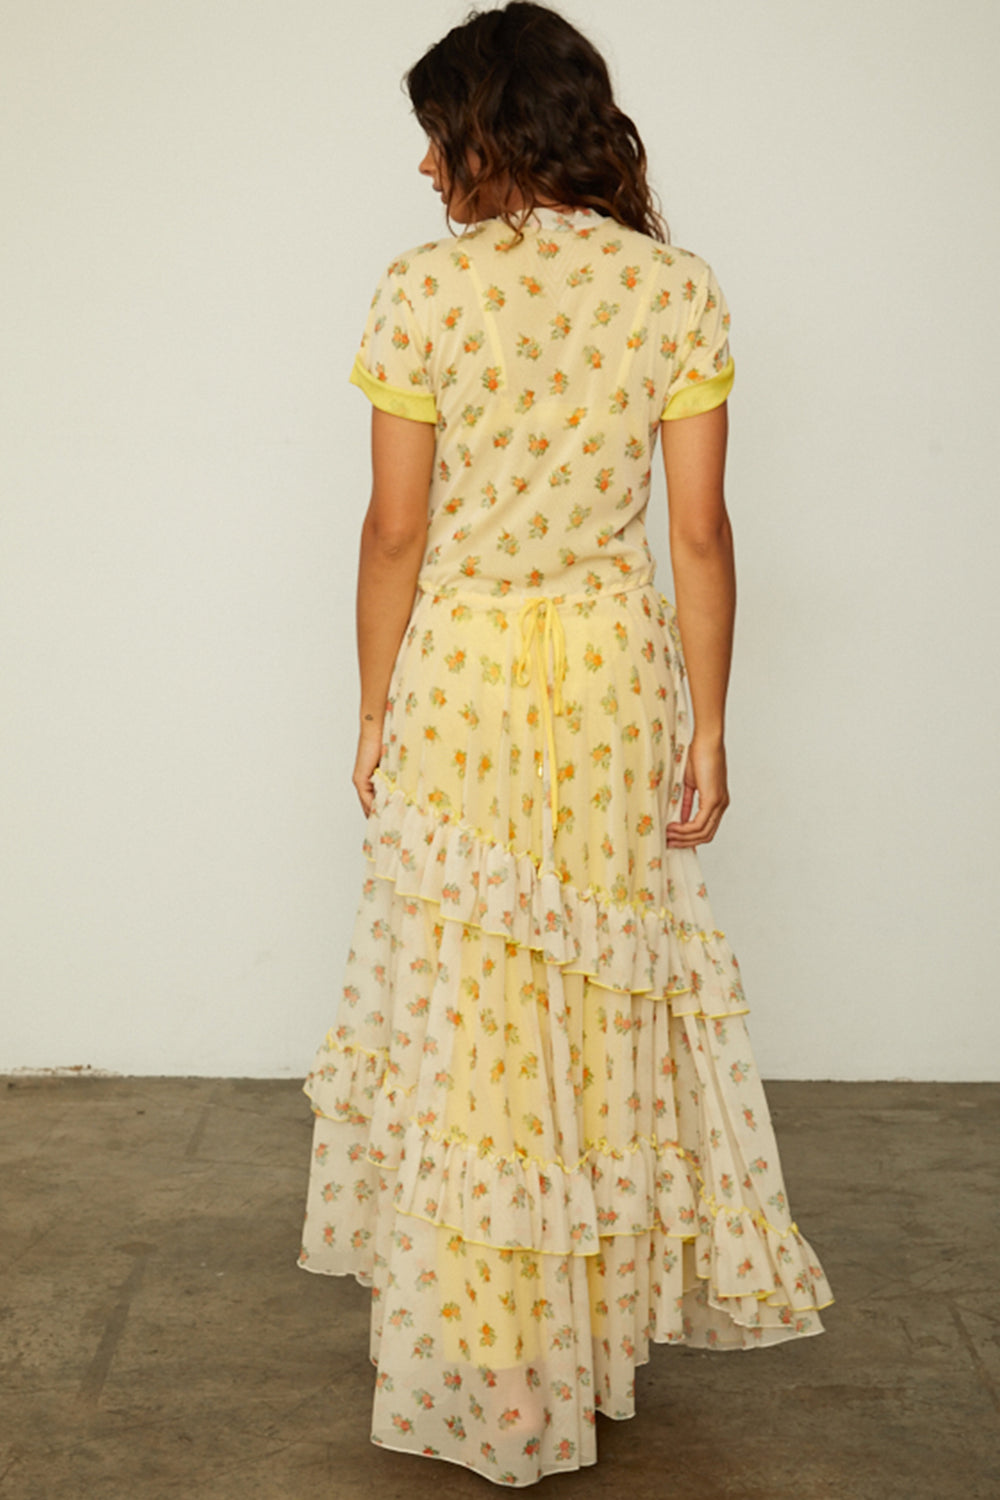 nude and yellow floral mesh vintage inspired ruffled maxi dress with adjustable tie at the waist